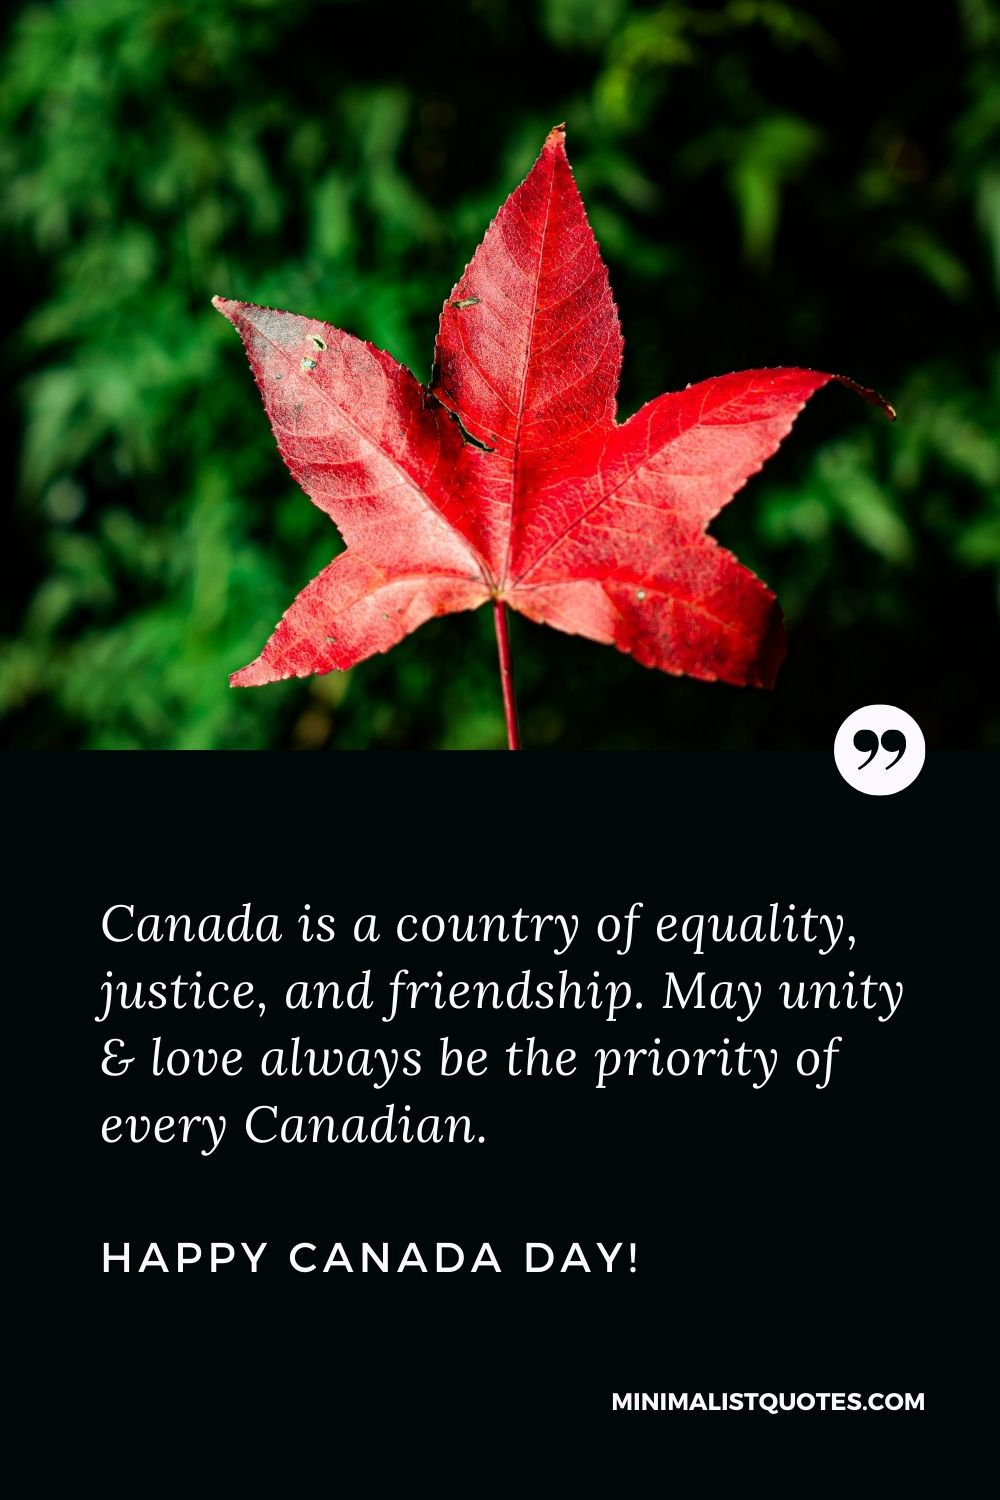 Happy Canada day messages: Canada is a country of equality, justice, and friendship. May unity & love always be the priority of every Canadian. Happy Canada Day!